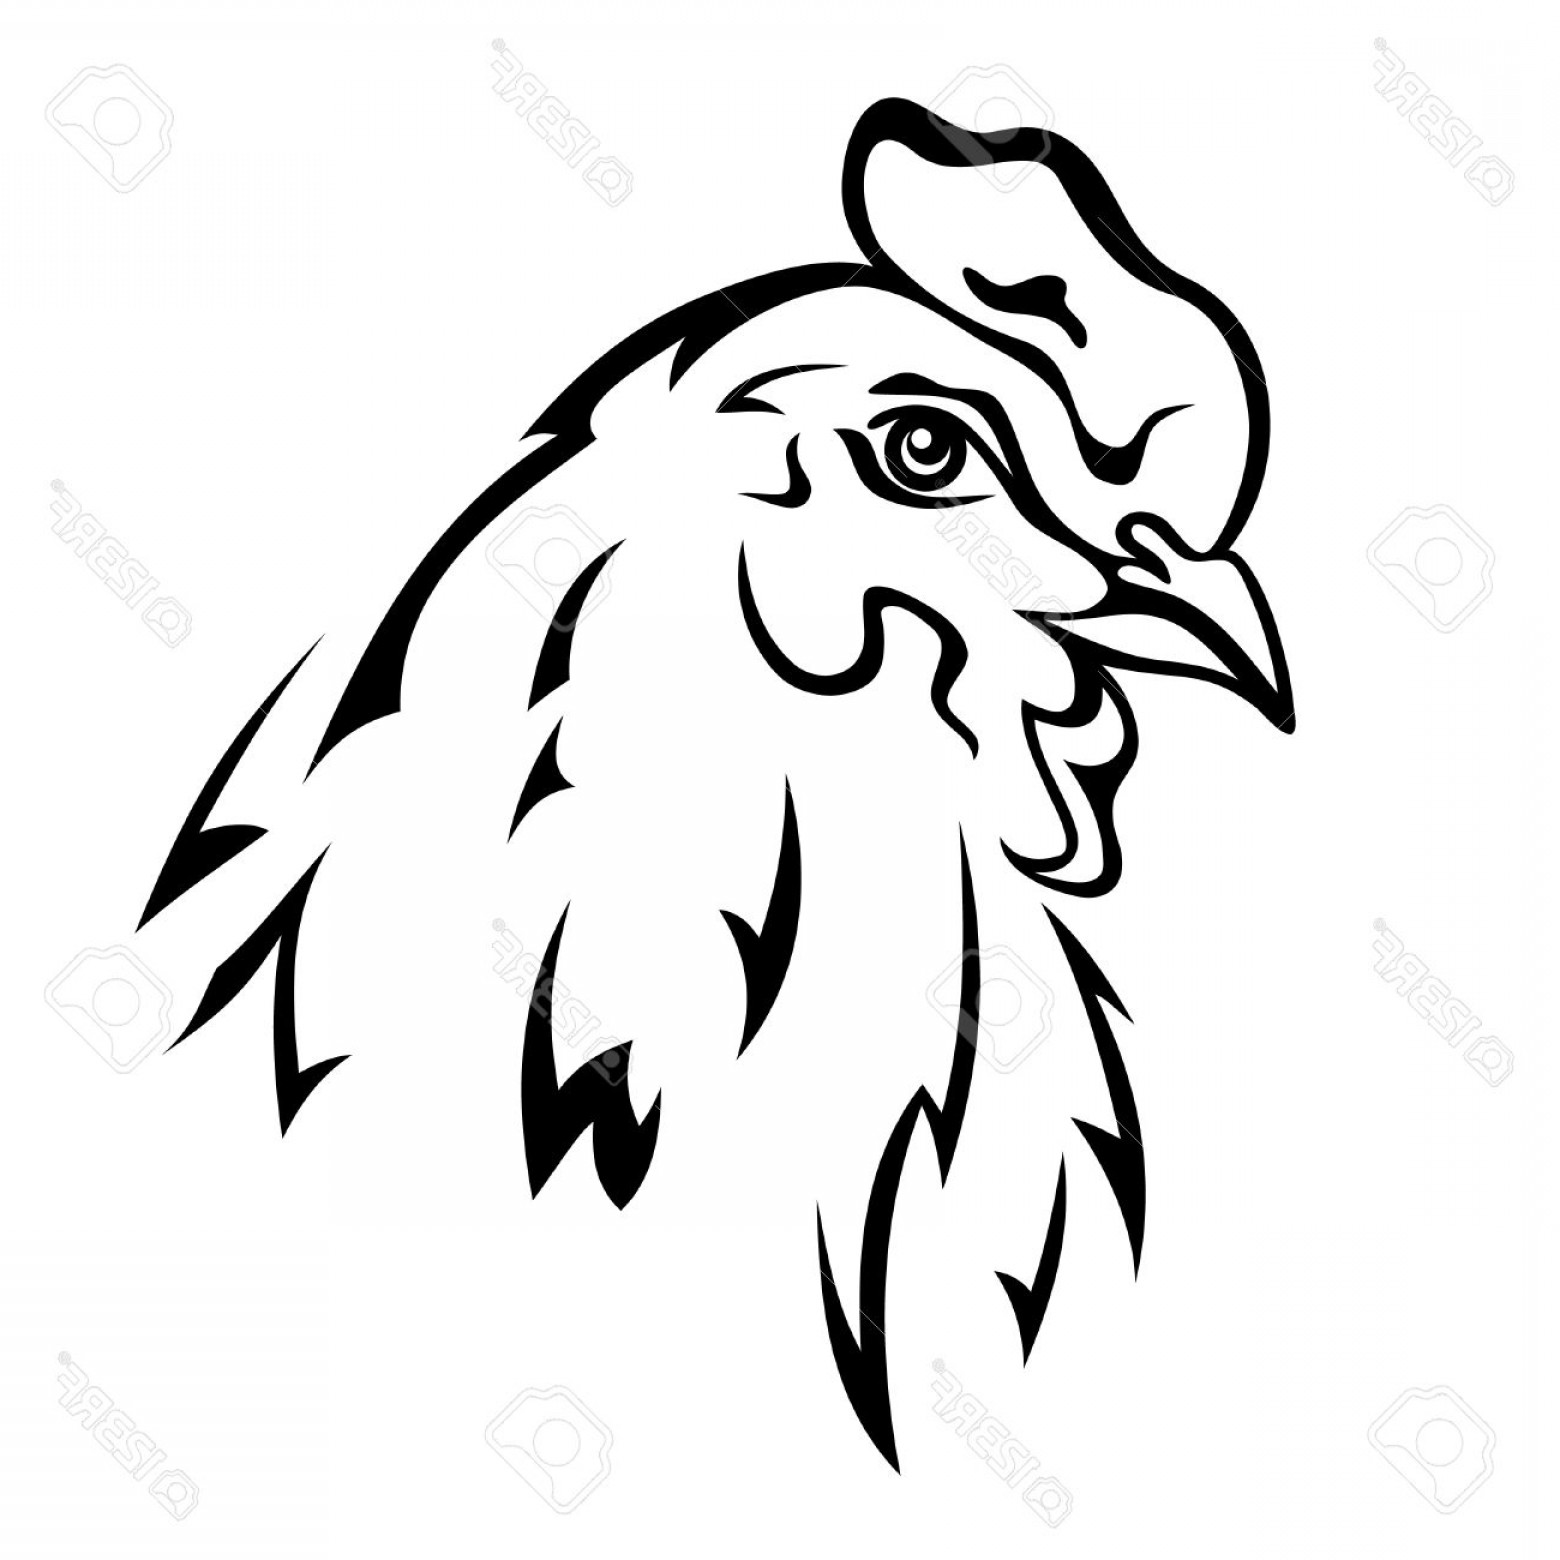 1560x1560 Photochicken Head Vector Illustration Black And White Outline